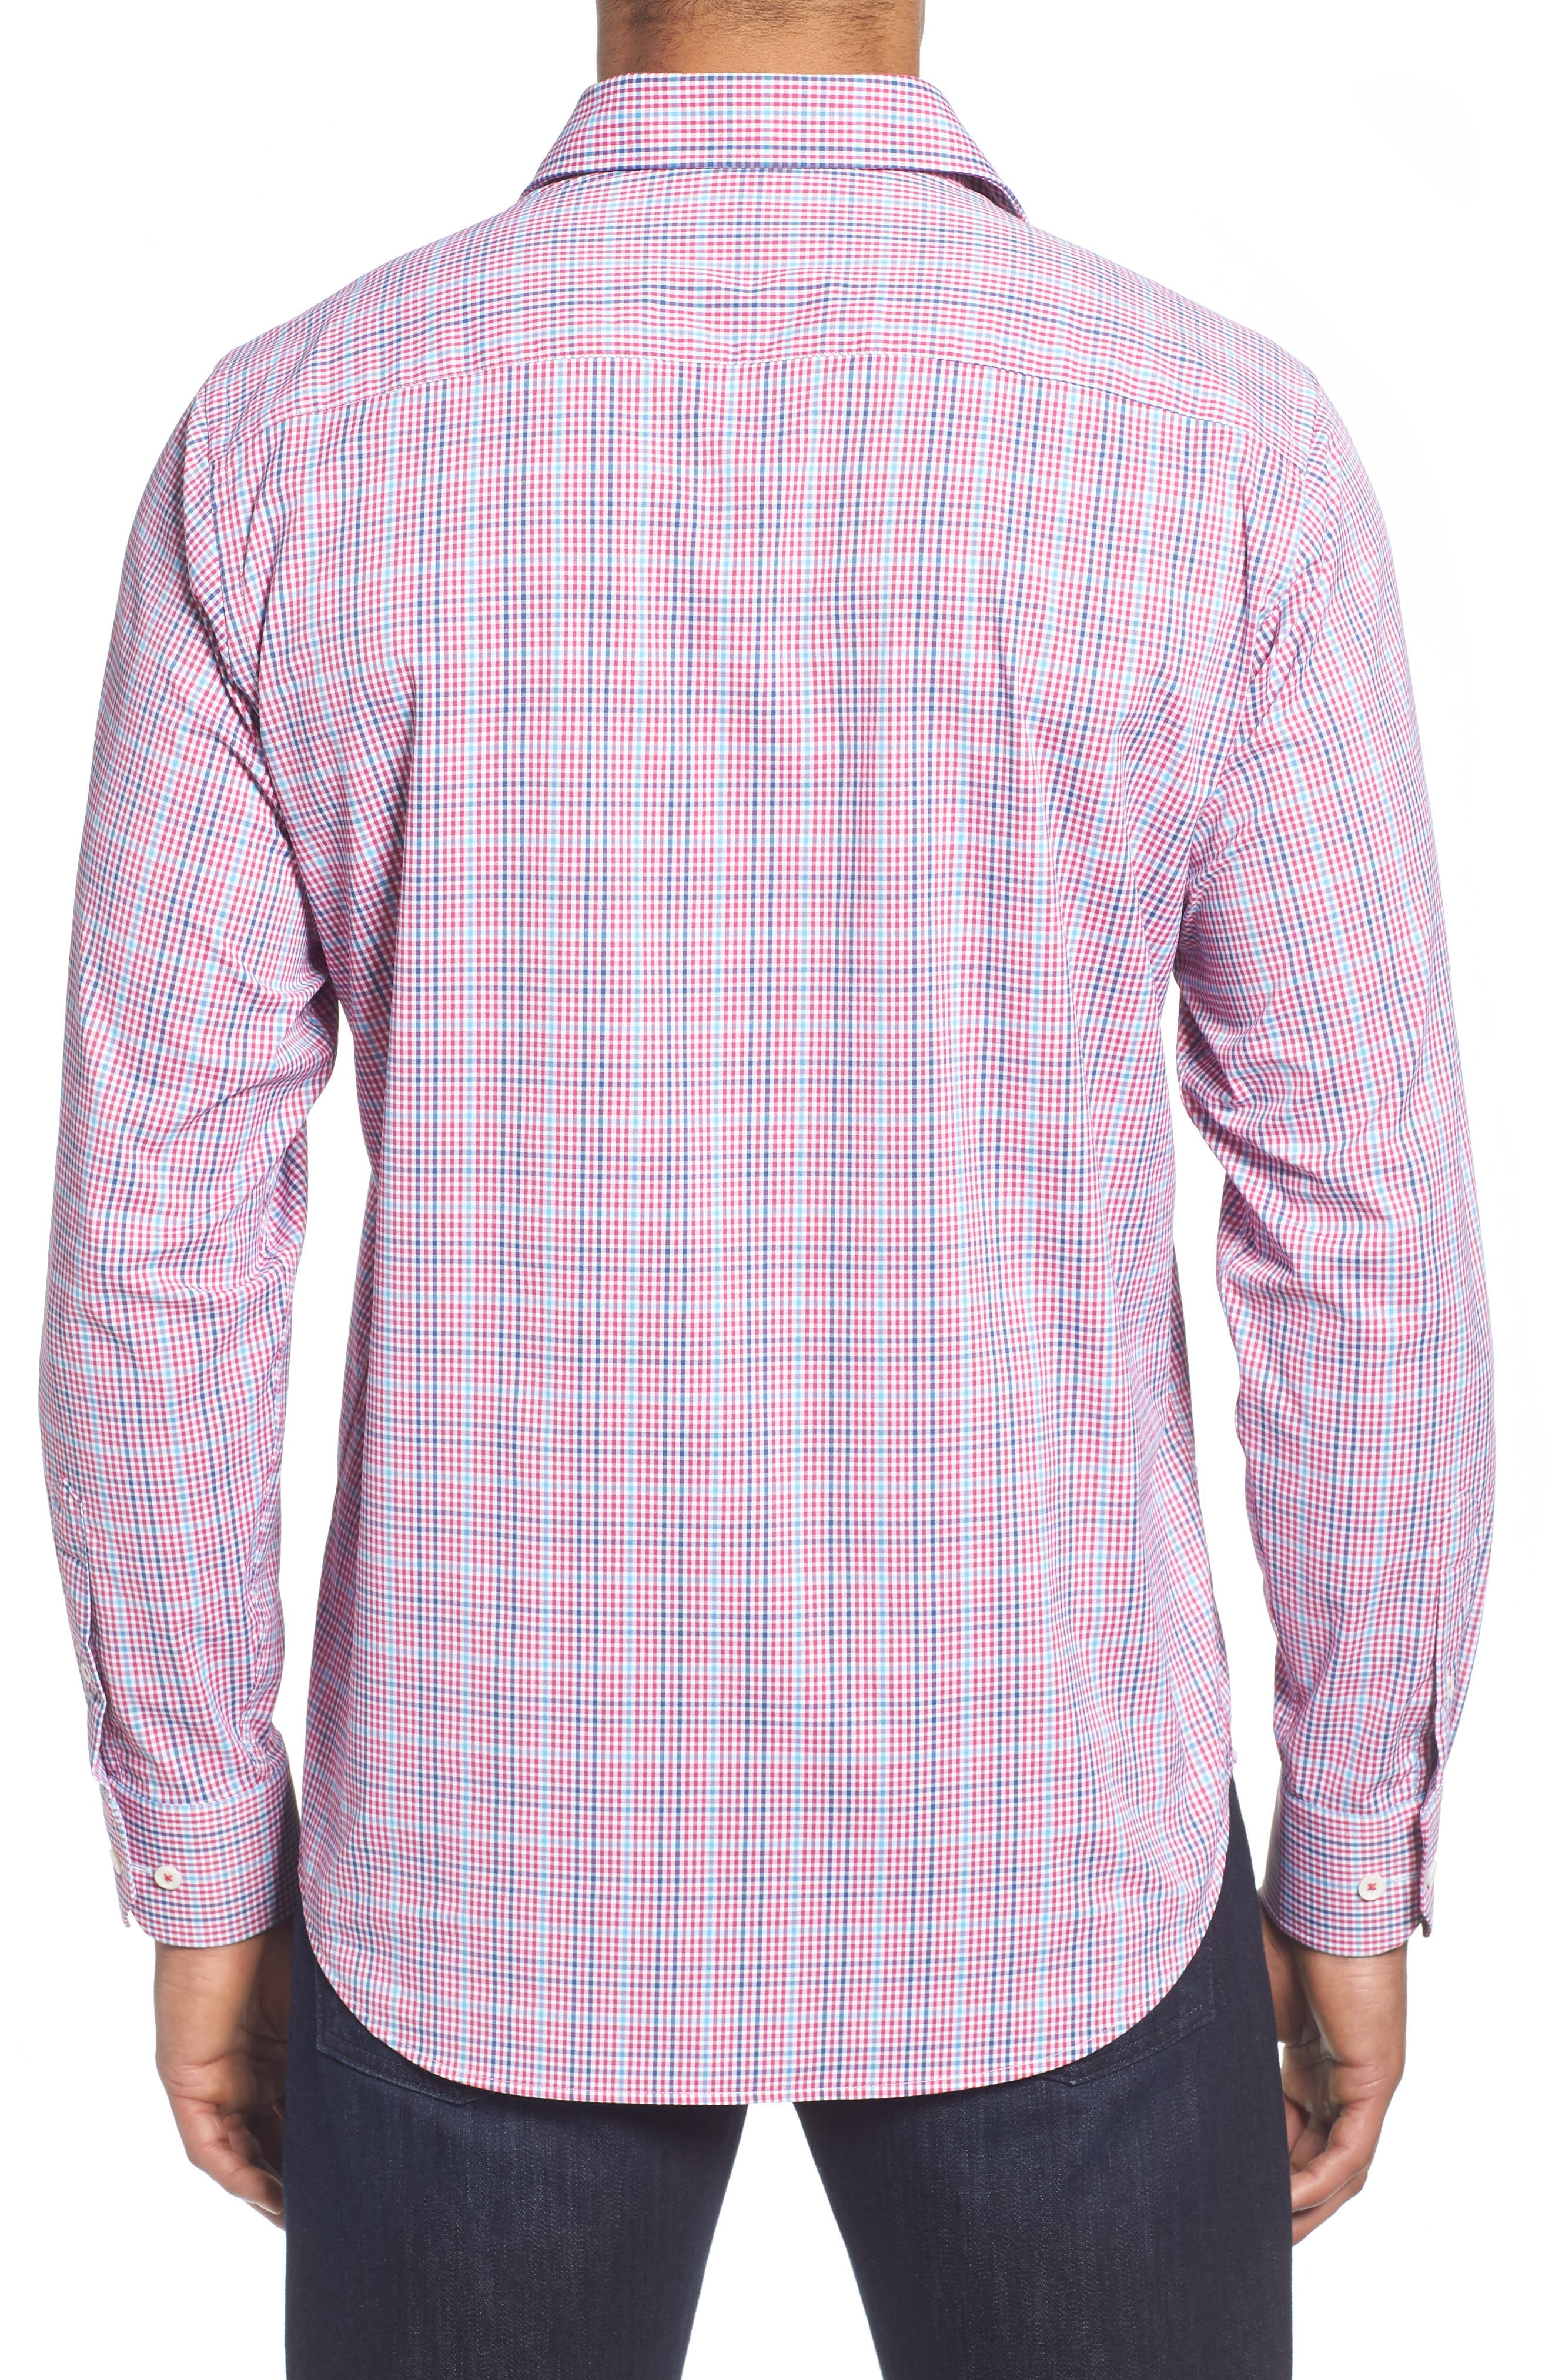 Classic Fit Pin Check Performance Sport Shirt,                             Alternate thumbnail 3, color,                             Berry